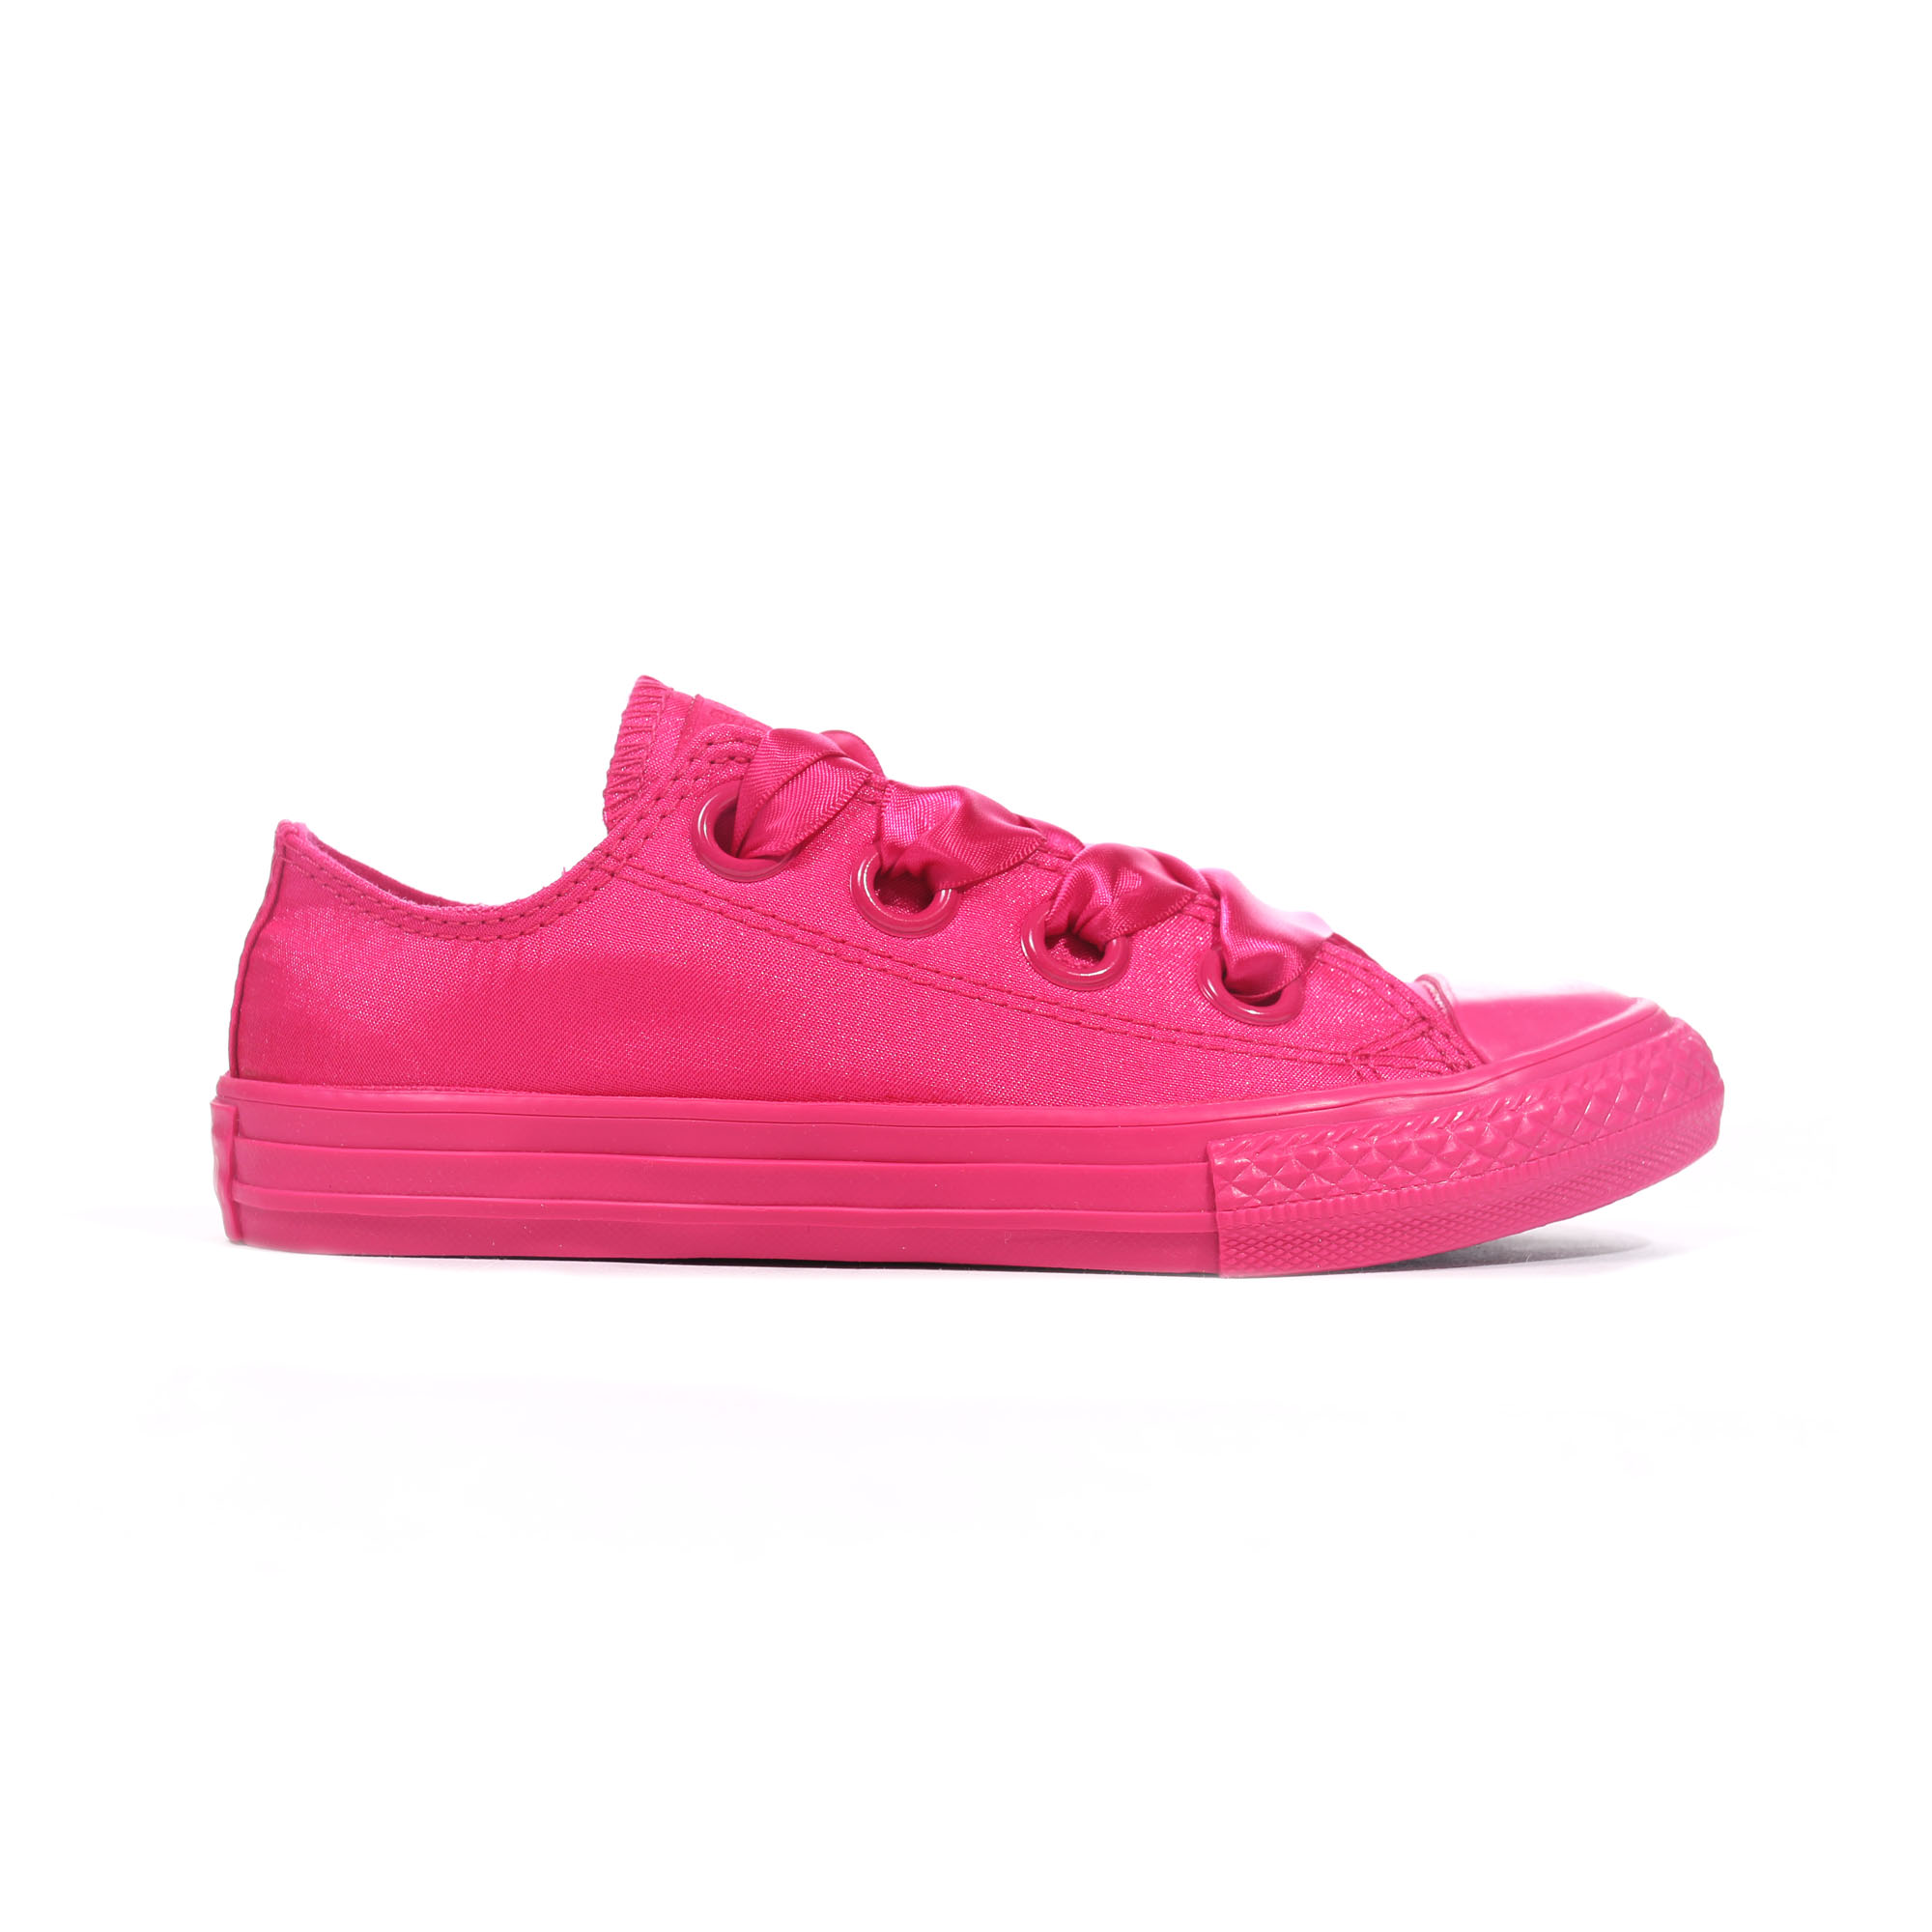 01c7691e762a Details about Converse Chuck Taylor All Star Big Eyelets Ox Junior Trainer  Pink Pop